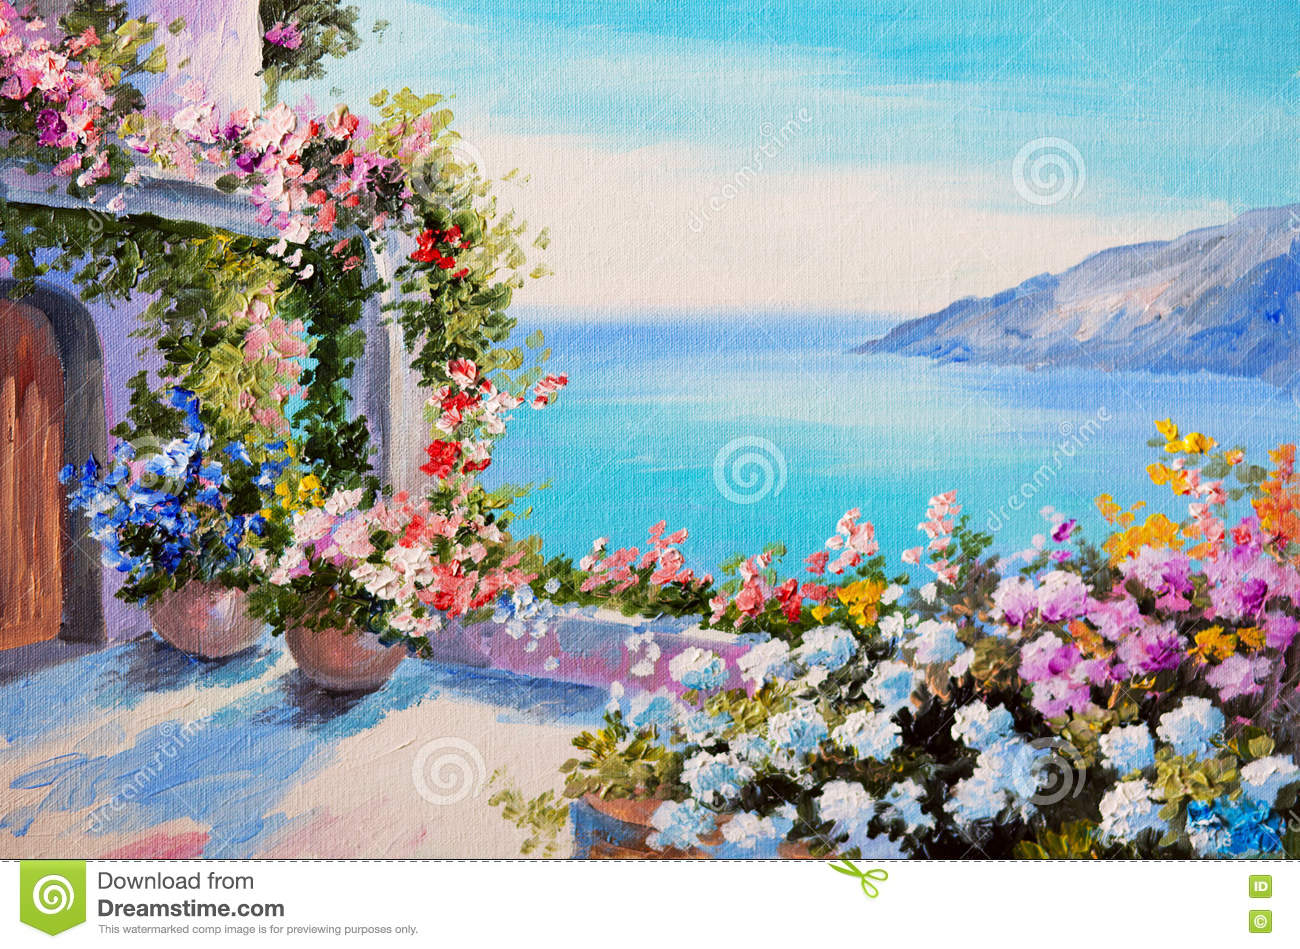 Santorini Cartoons Illustrations Vector Stock Images 344 Pictures To Download From